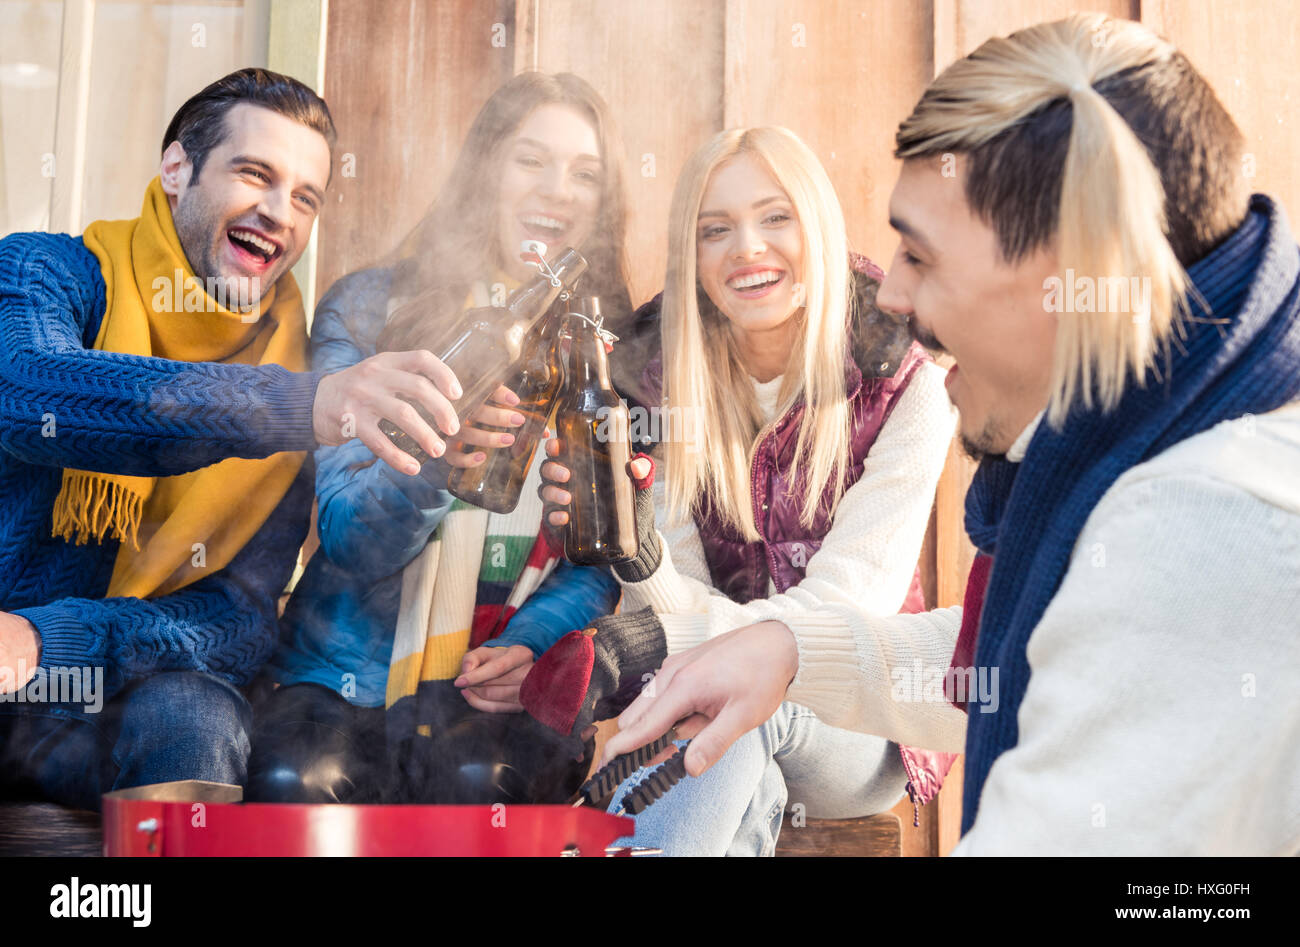 excited friends clinking bottles of beer at barbecue - Stock Image